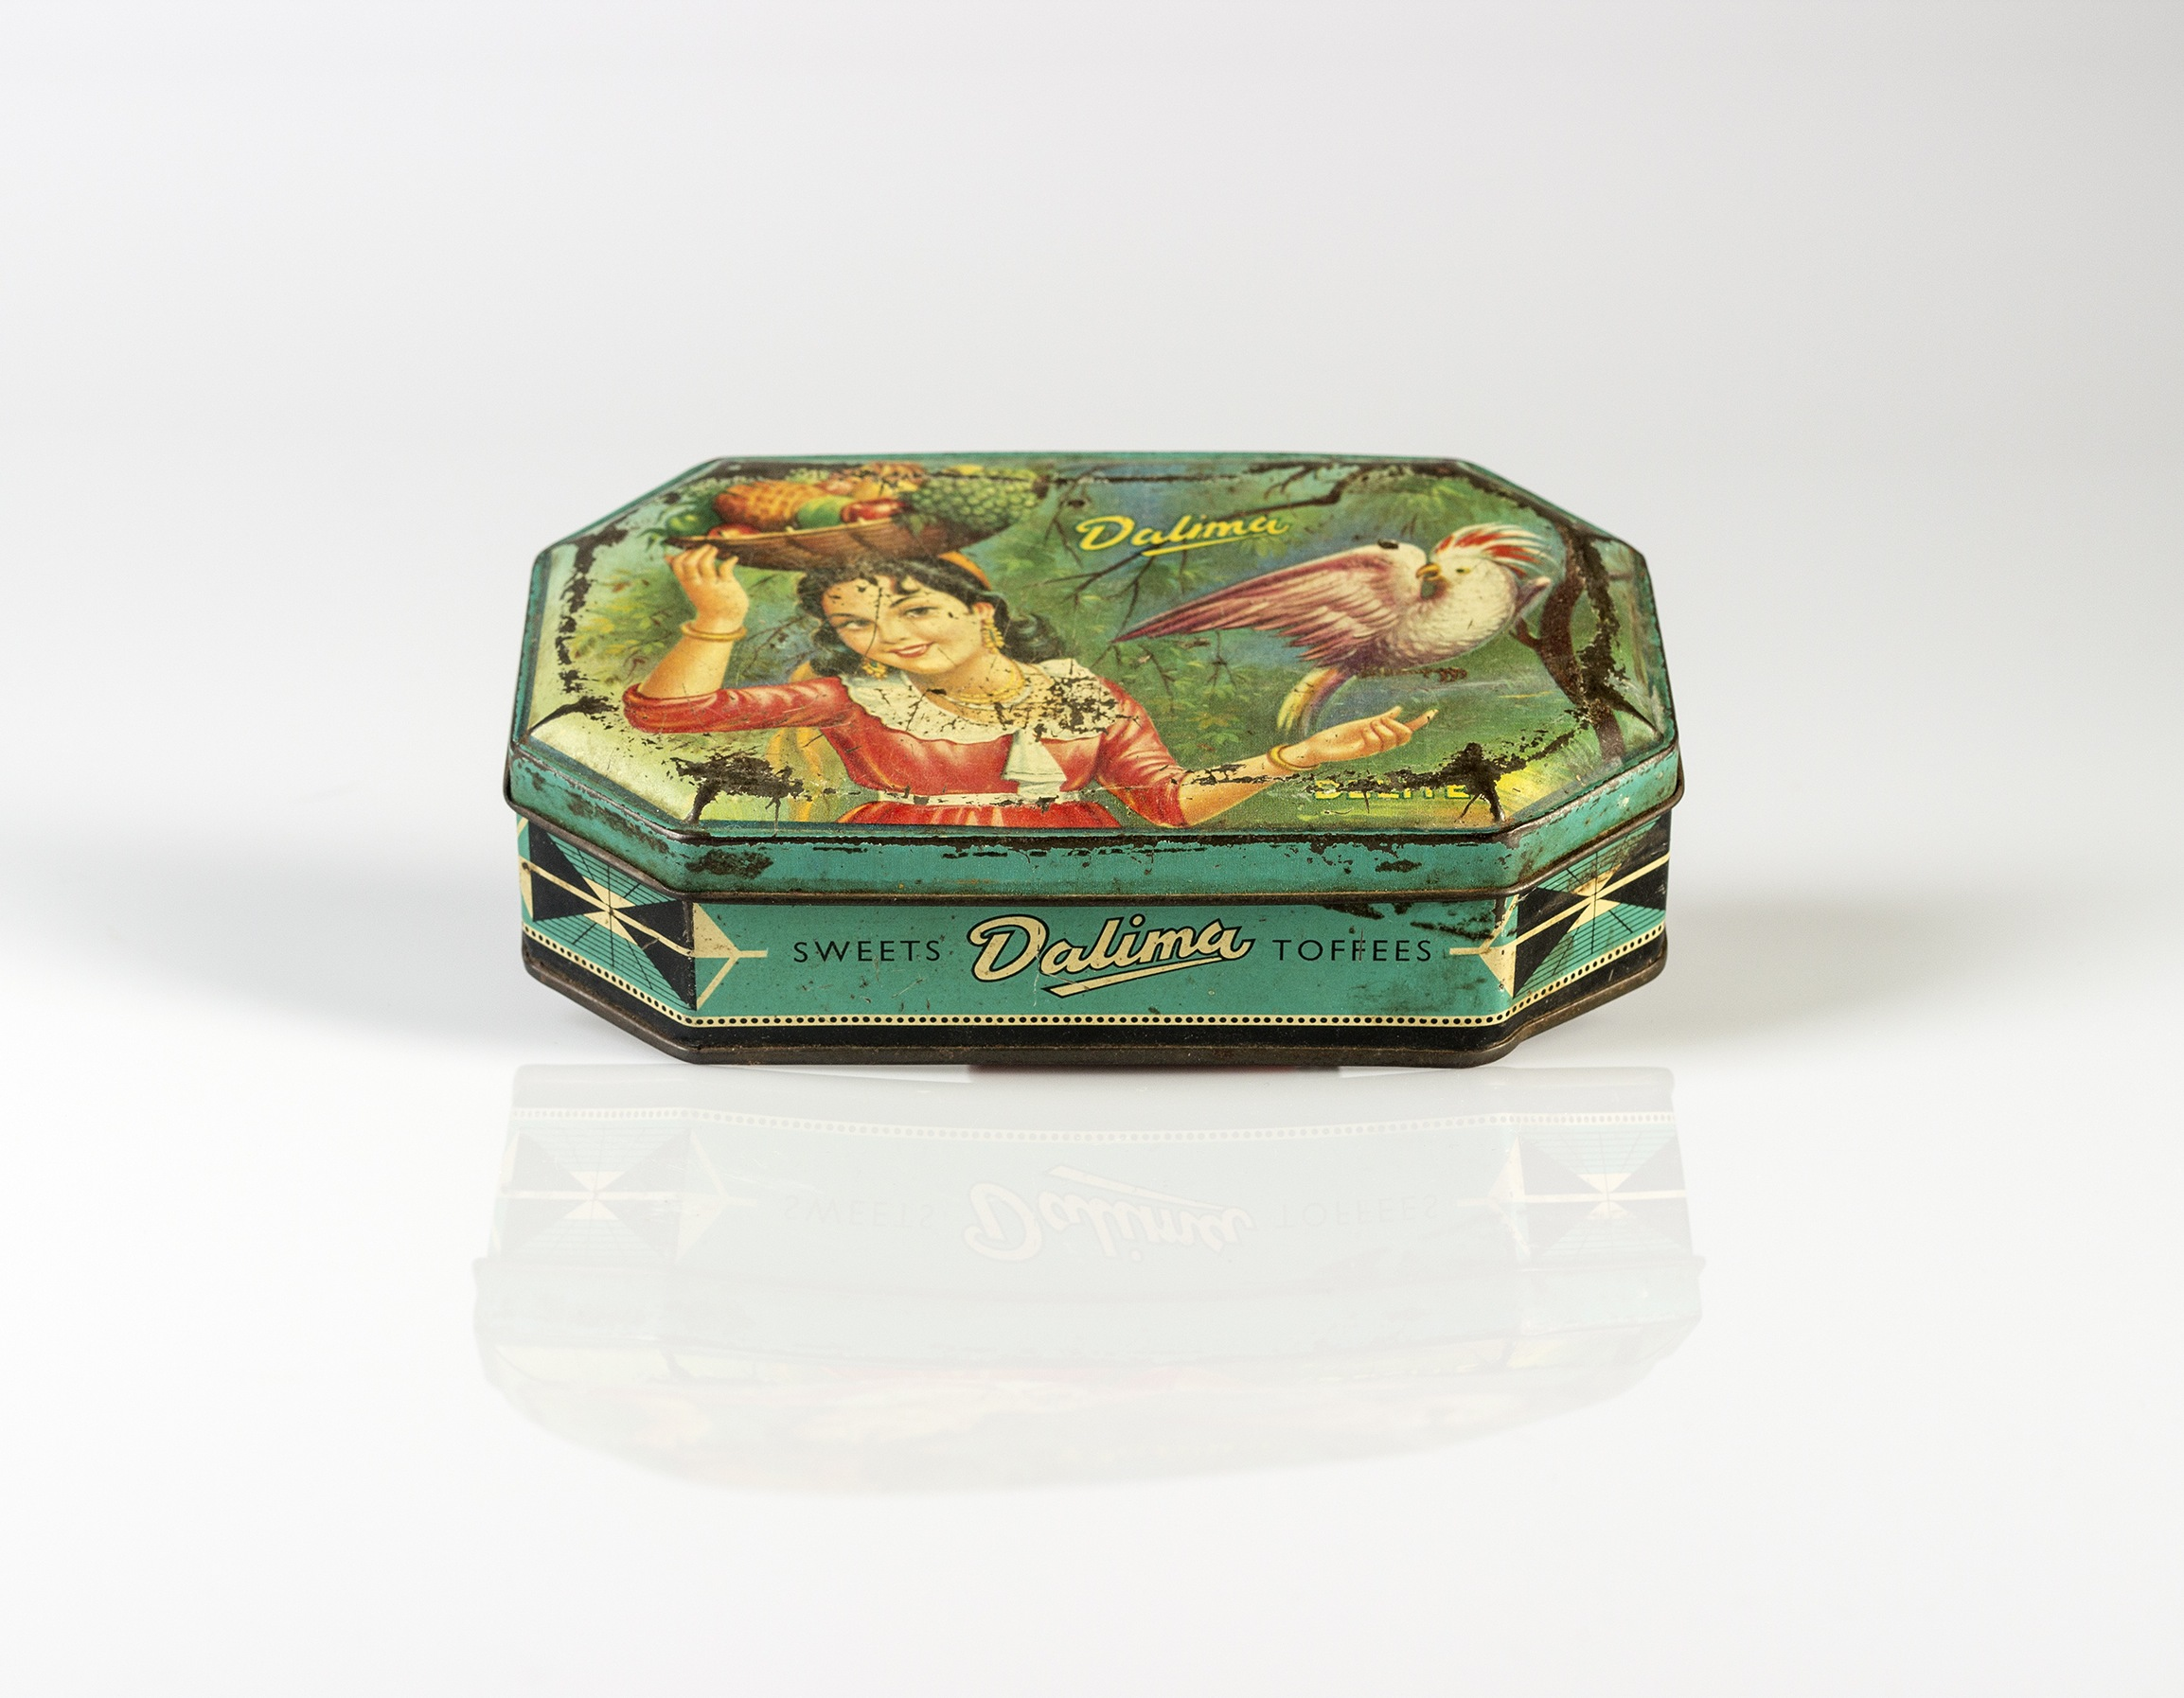 Her vintage Dalima Toffees and Sweets (girl with a fruit basket and Parrot Print Litho) tin box, where she keeps Her precious photo negatives and photographs  (Contents of her bedside drawer series),2016,Pure pigment print on Platine Rag paper, 35.5 x 45.75 cm